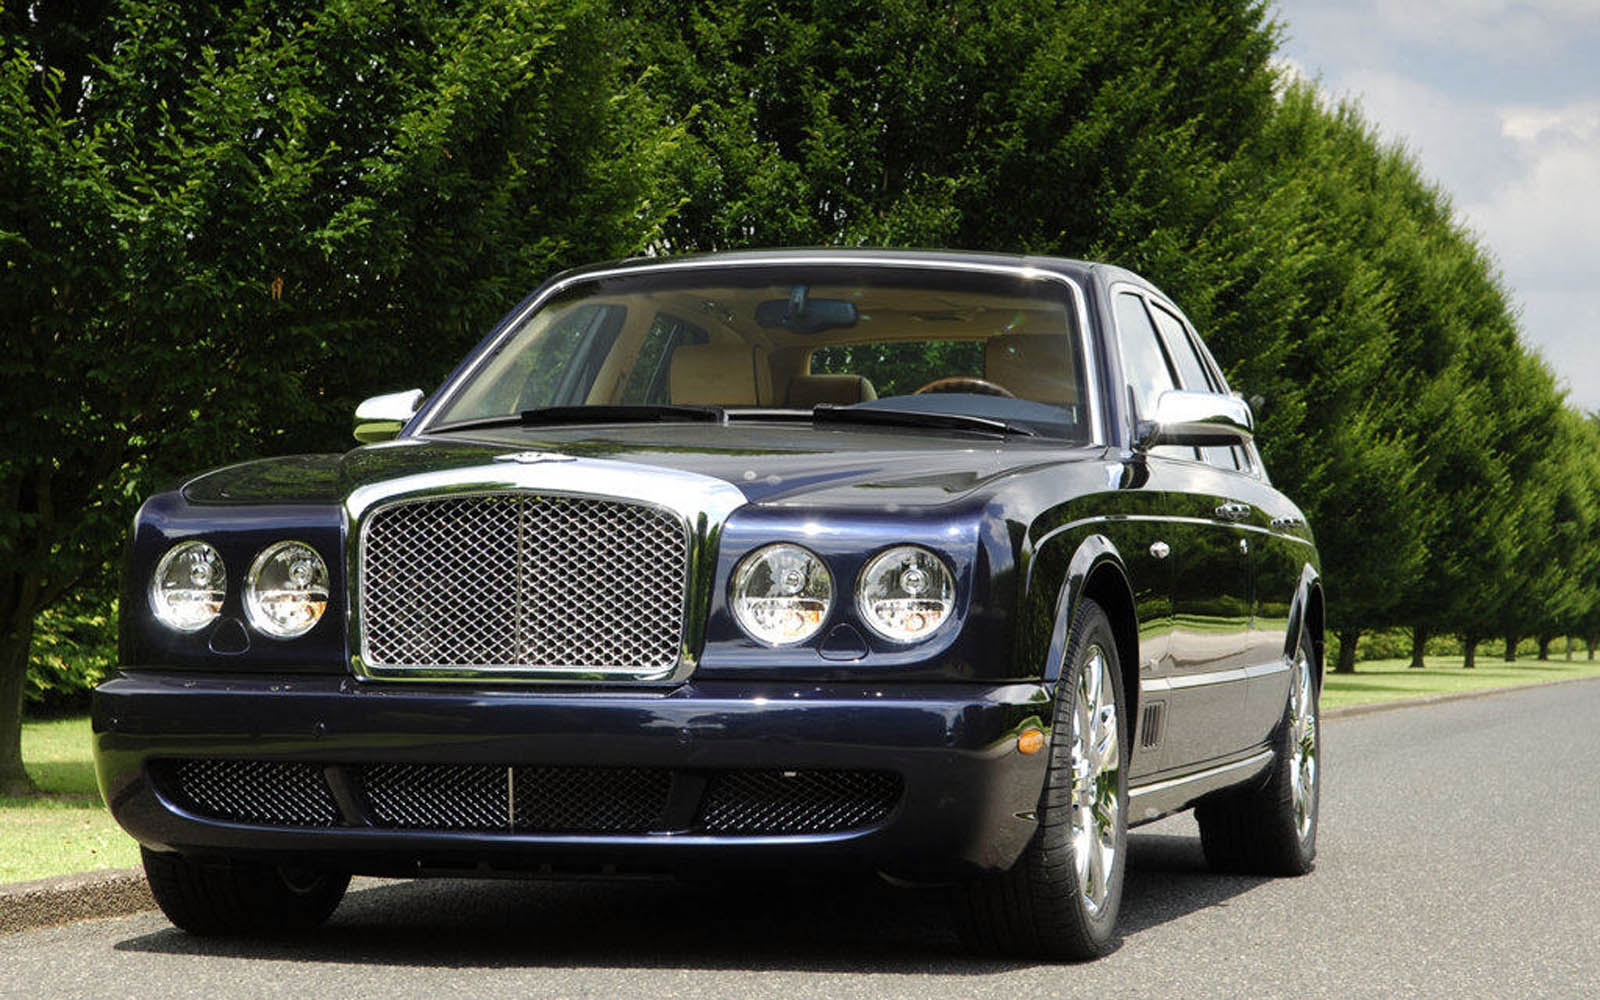 Wallpapers Bentley Arnage Car Wallpapers